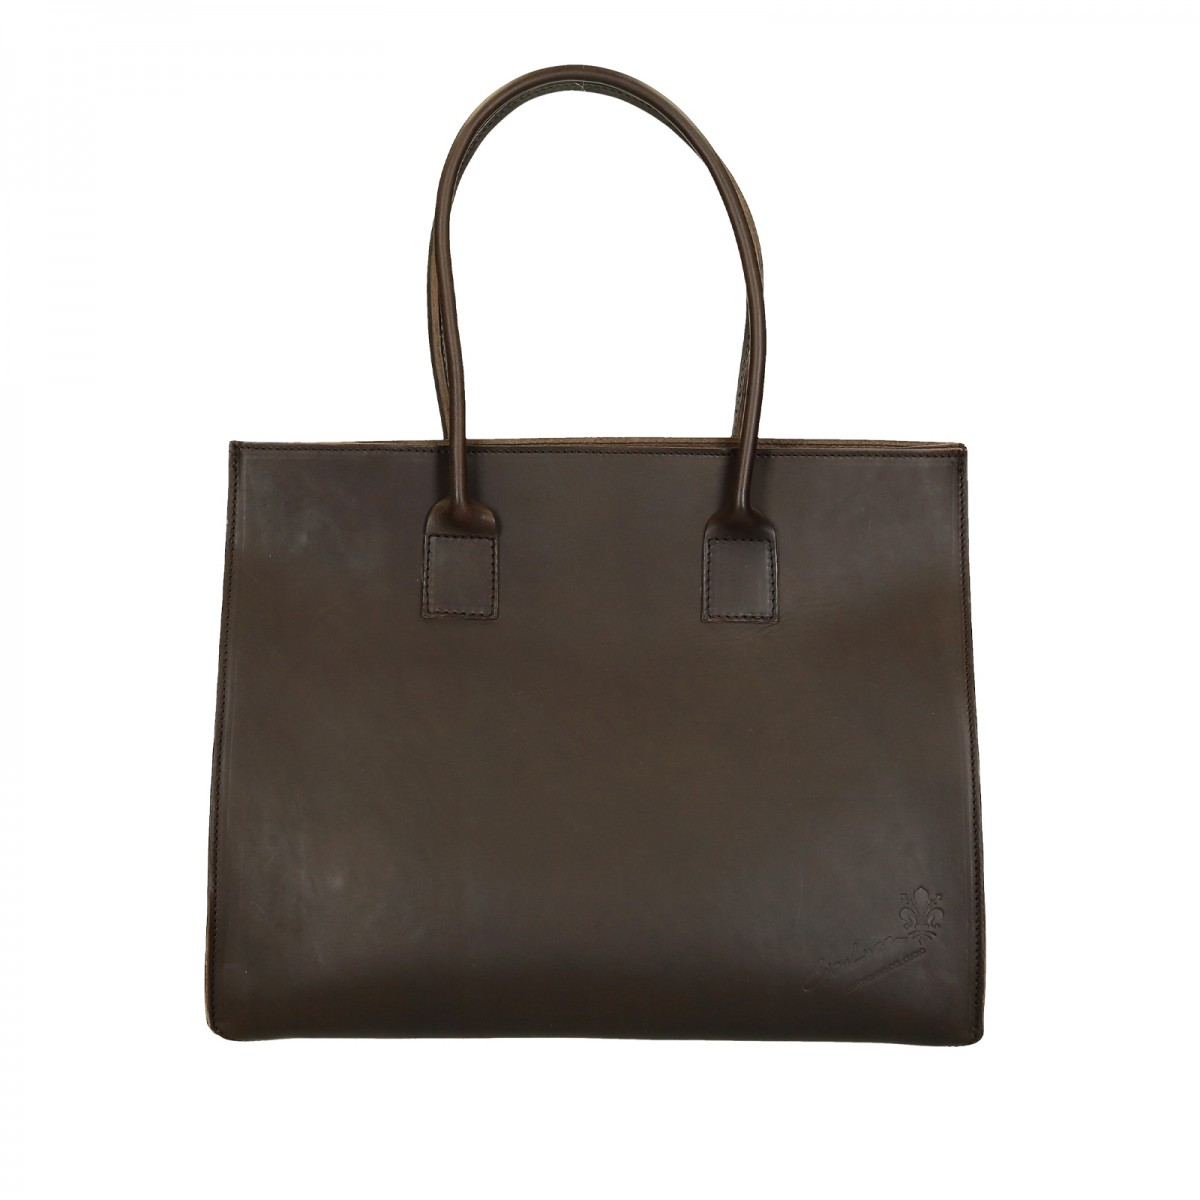 Creative Womenu0026#39;s Lifetime Leather Travel Tote Bag From Duluth Trading Company Is Made Of Beautiful Full ...